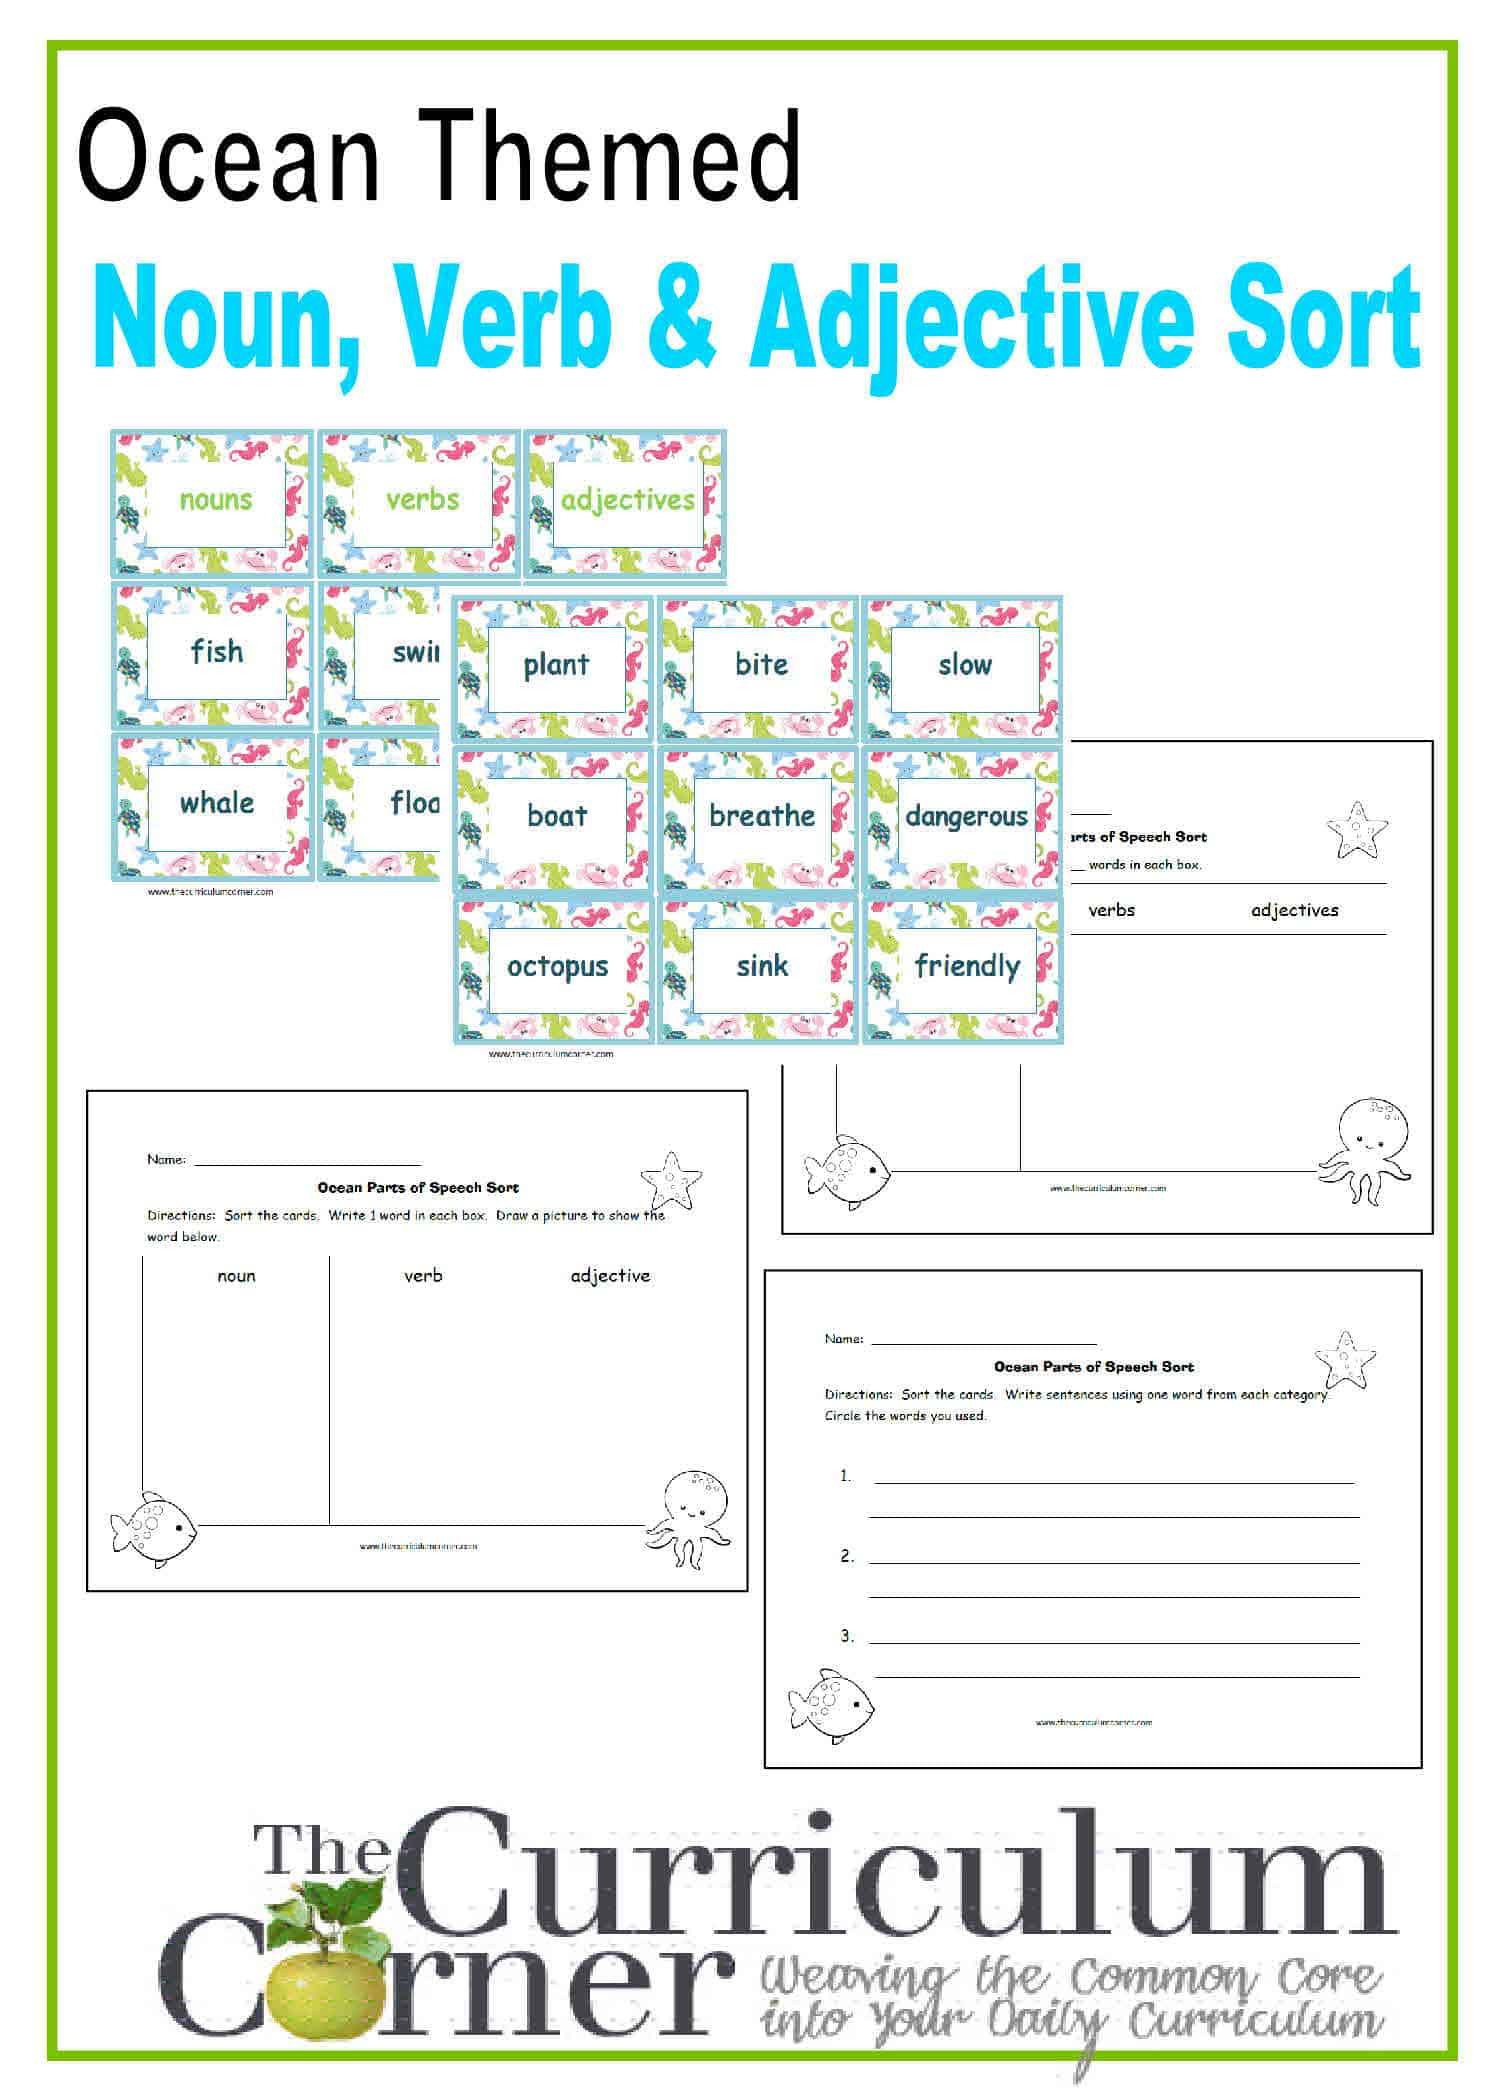 Ocean Themed Noun Verb Adjective Sort